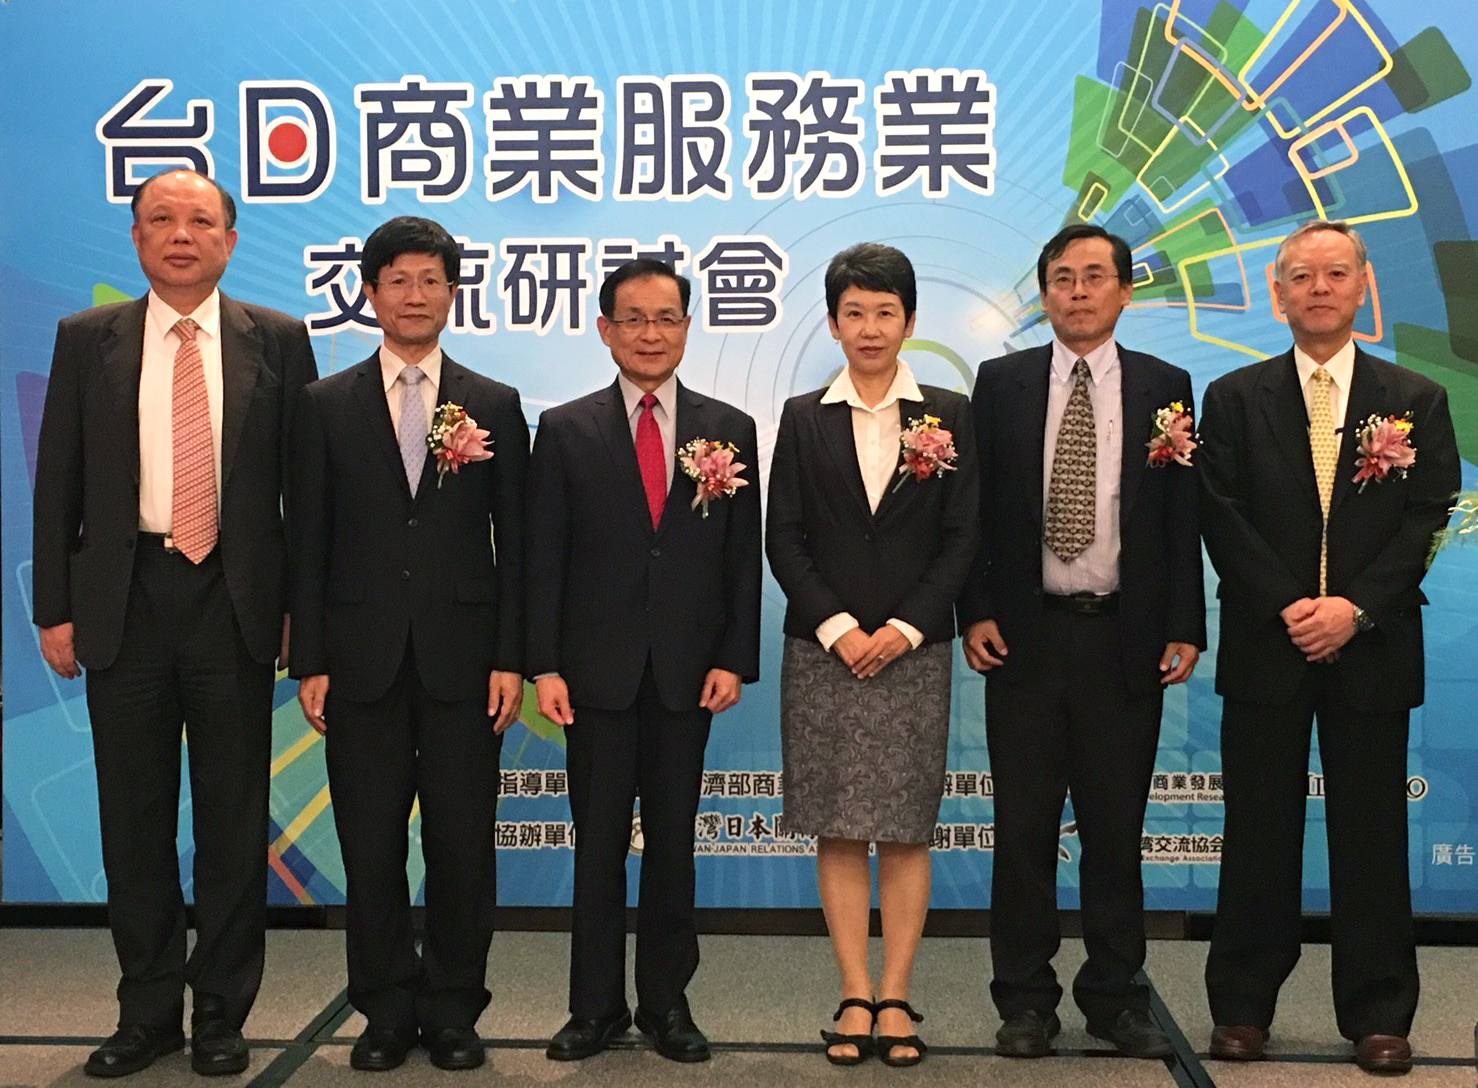 photo:Joint organized seminar with CDRI, Taiwan